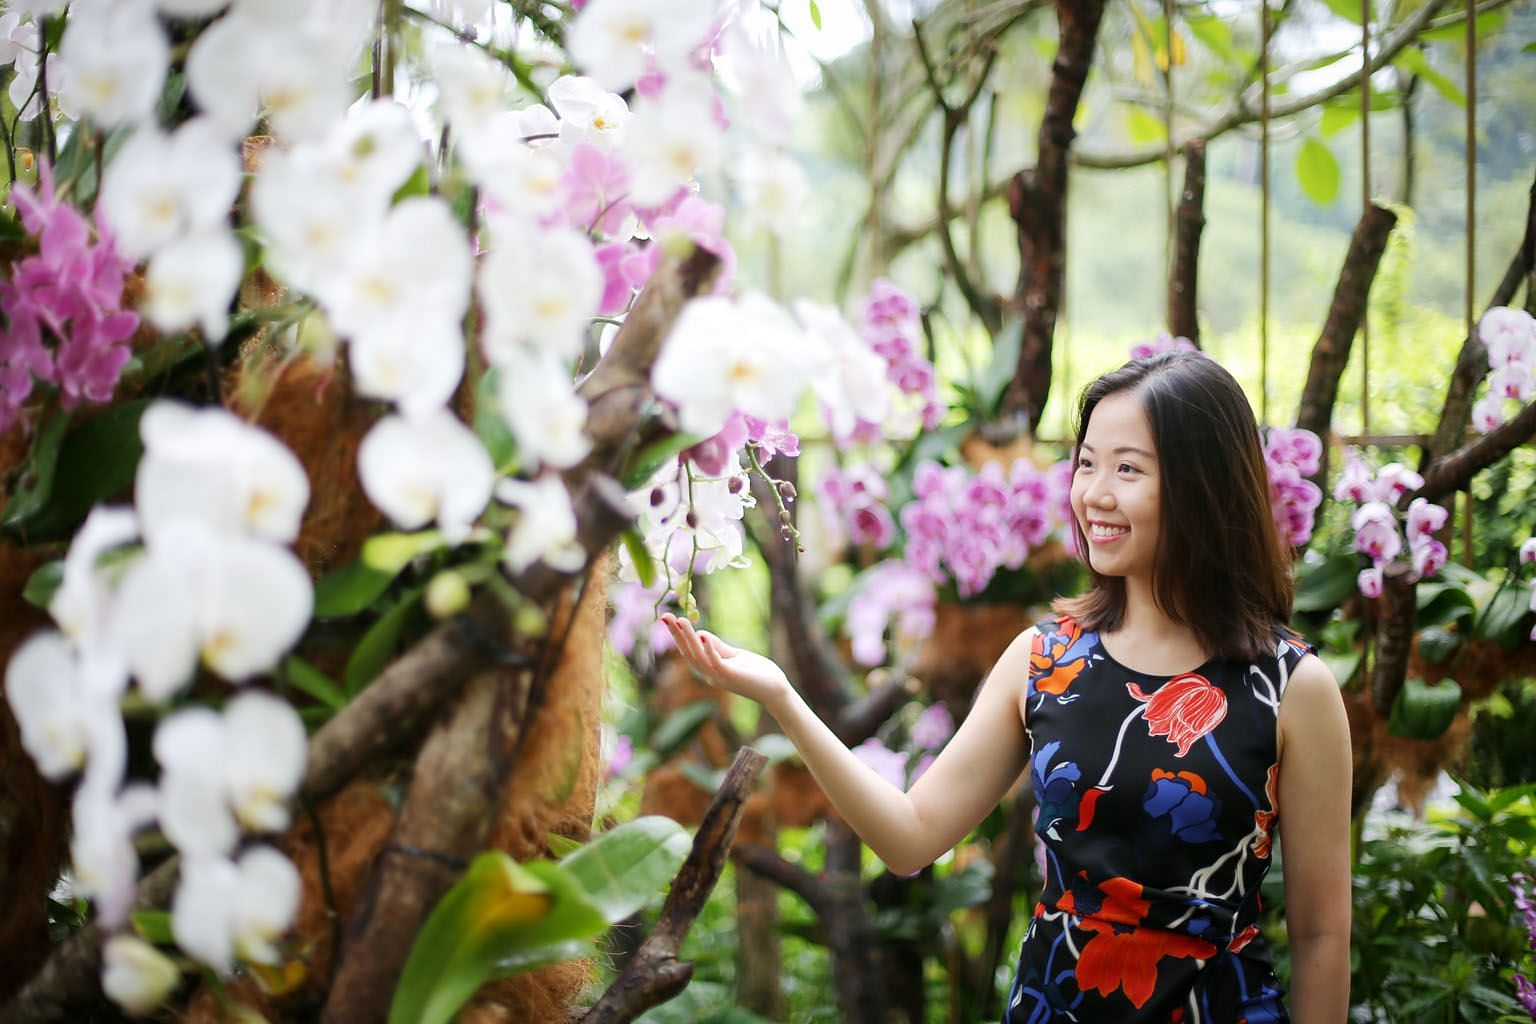 Ms Livia Chng at the Singapore Botanic Gardens. The 29-year-old last year set up Refresh Flowers, a social initiative that turns flowers used in weddings into bouquets for patients undergoing palliative care. It currently works with Assisi and HCA ho